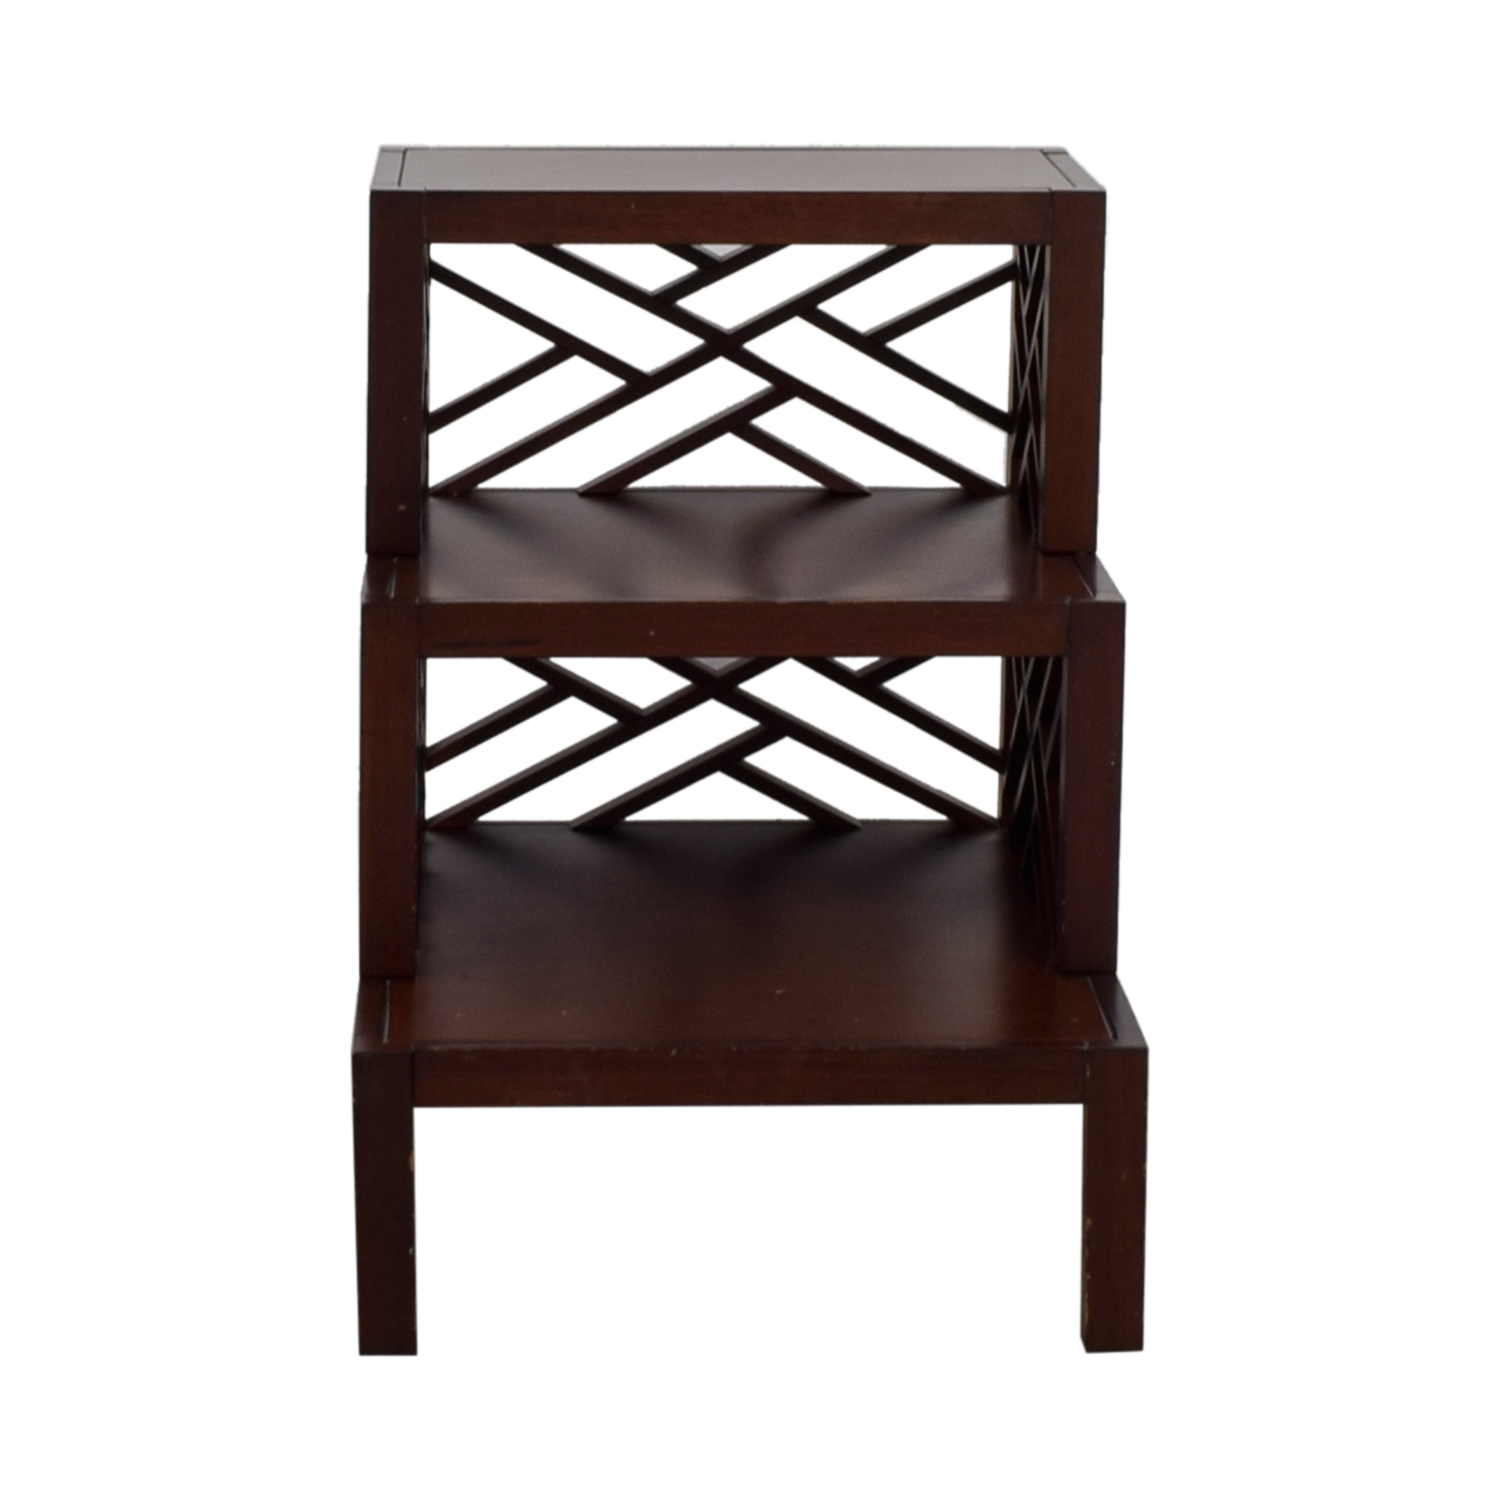 Multi Level Wood Trellis End Table second hand